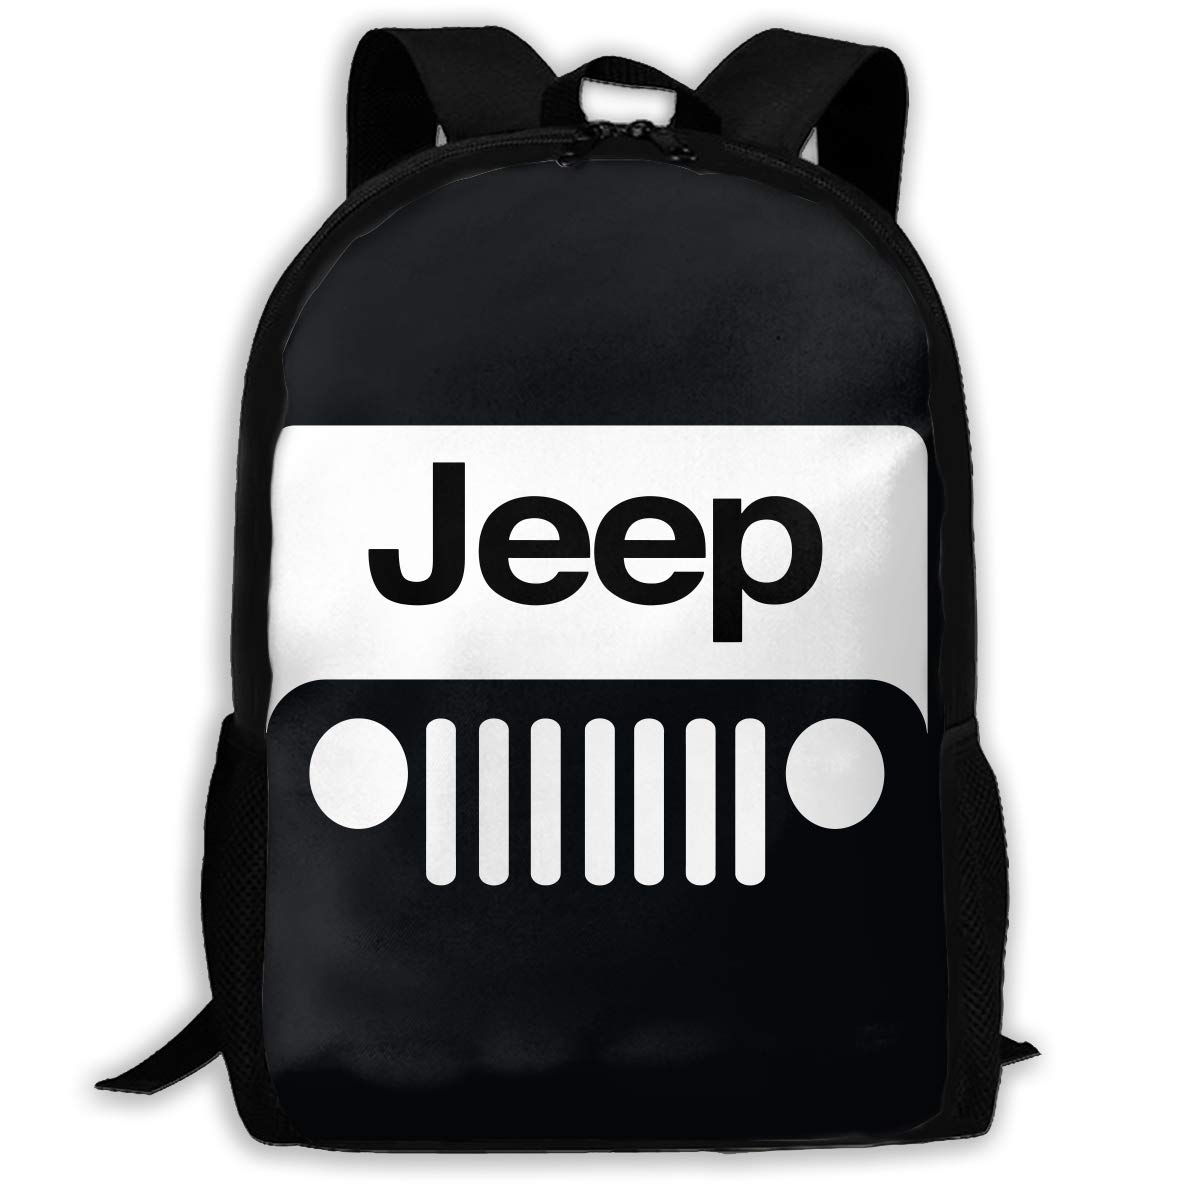 Character Jeep Travel Laptop Backpack Business Anti Theft Slim Durable Laptops  Backpack Water Resistant College School Computer Bag for Women   Men Fits  17 ... ff056a207b